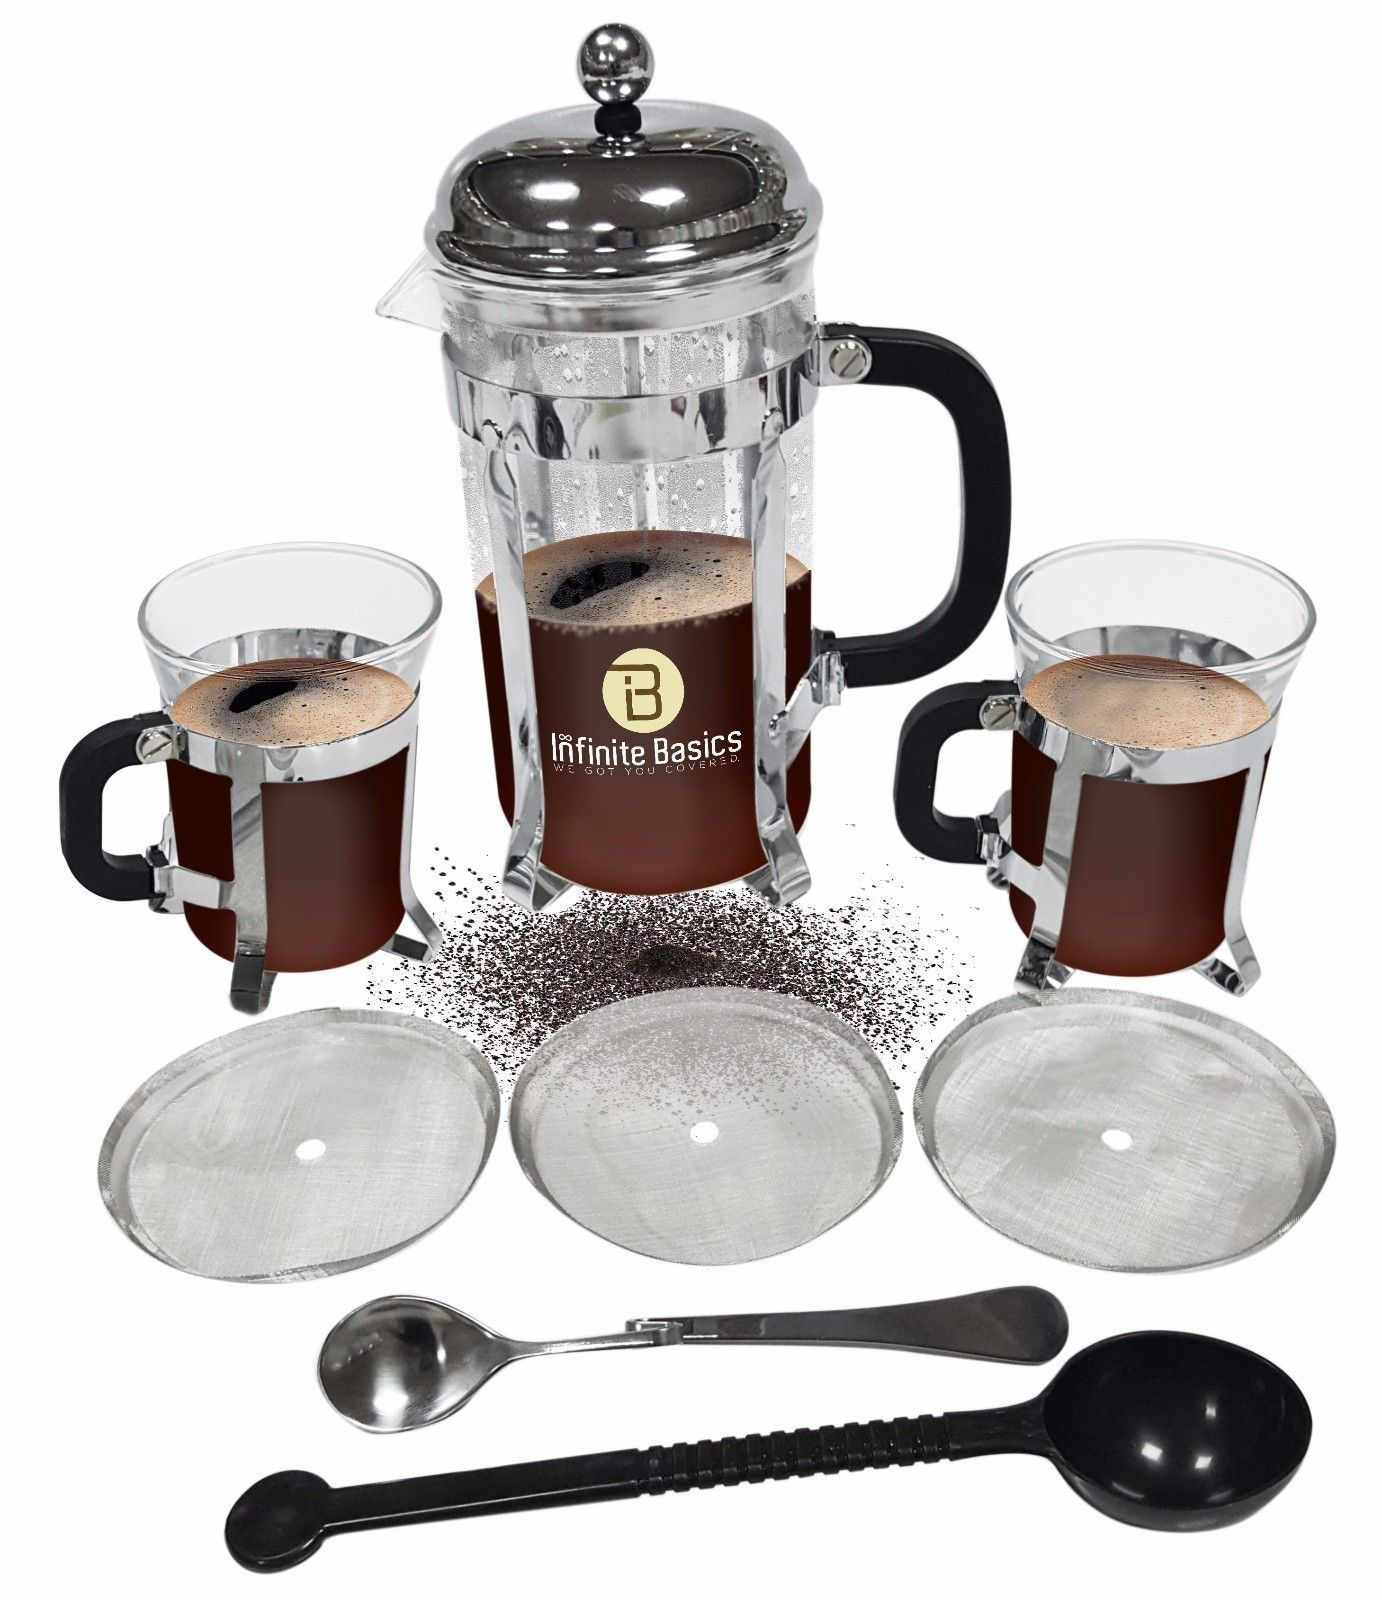 French Press 34oz Tea Coffee Maker Stainless Steel 2 Bonus Mugs, 6 Total Filters